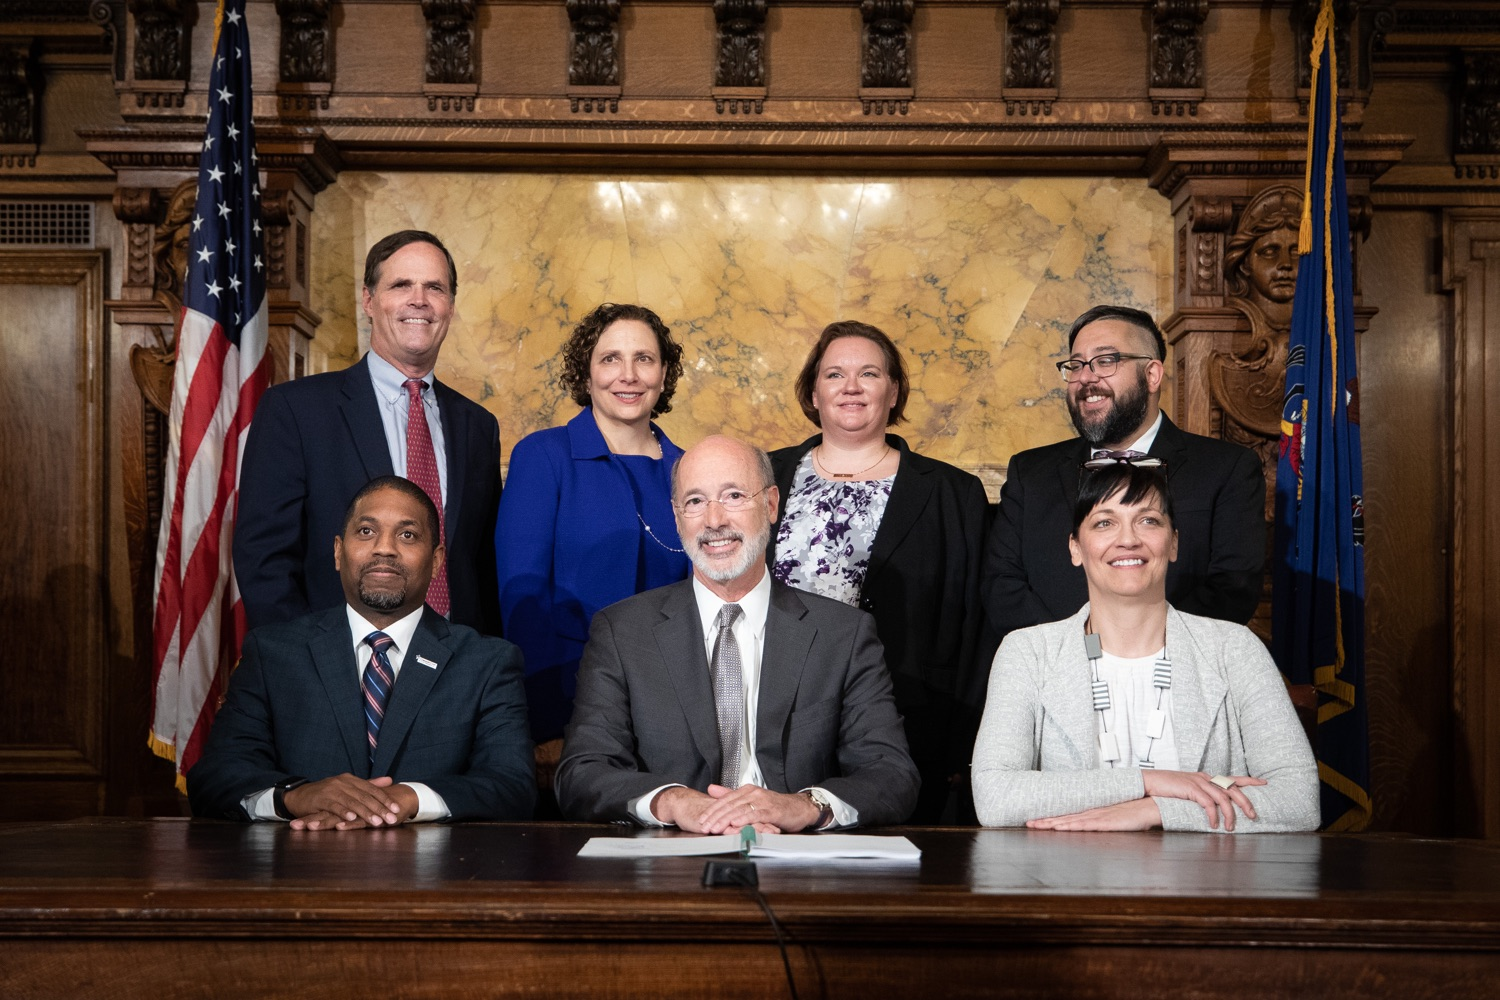 "<a href=""http://filesource.abacast.com/commonwealthofpa/photo/17554_gov_voter_reform_bill_dz_022.jpg"" target=""_blank"">⇣ Download Photo<br></a>Harrisburg, PA  Governor Tom Wolf posing with attendees after the bill signing. Governor Wolf made voting more convenient and secure by signing Act 77 of 2019, the most significant improvement to Pennsylvanias elections in more than 80 years. The bipartisan compromise legislation takes effect for the April 2020 primary election and makes Pennsylvania a national leader with voter-friendly election reforms."